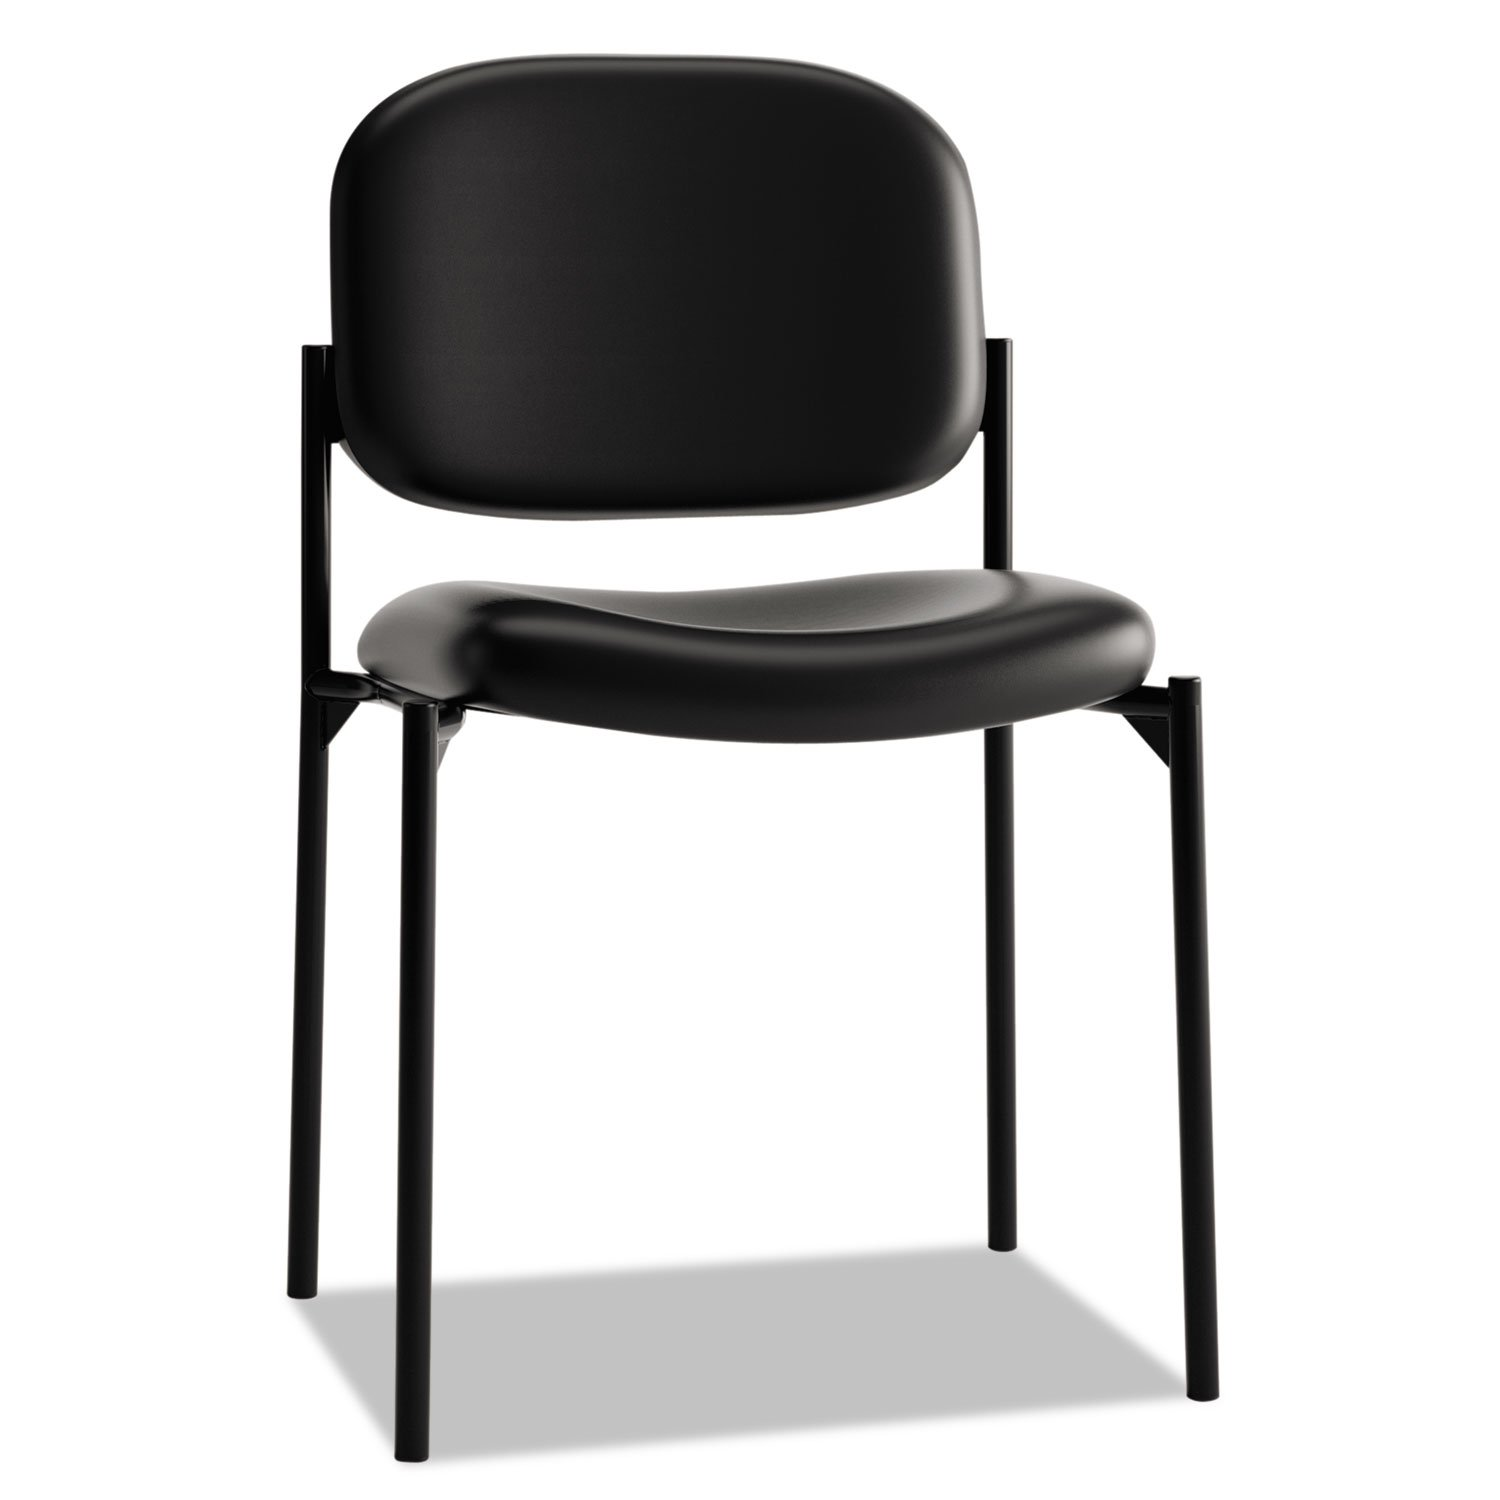 BSXVL606SB11 - VL606 Series Stacking Armless Guest Chair Basyx